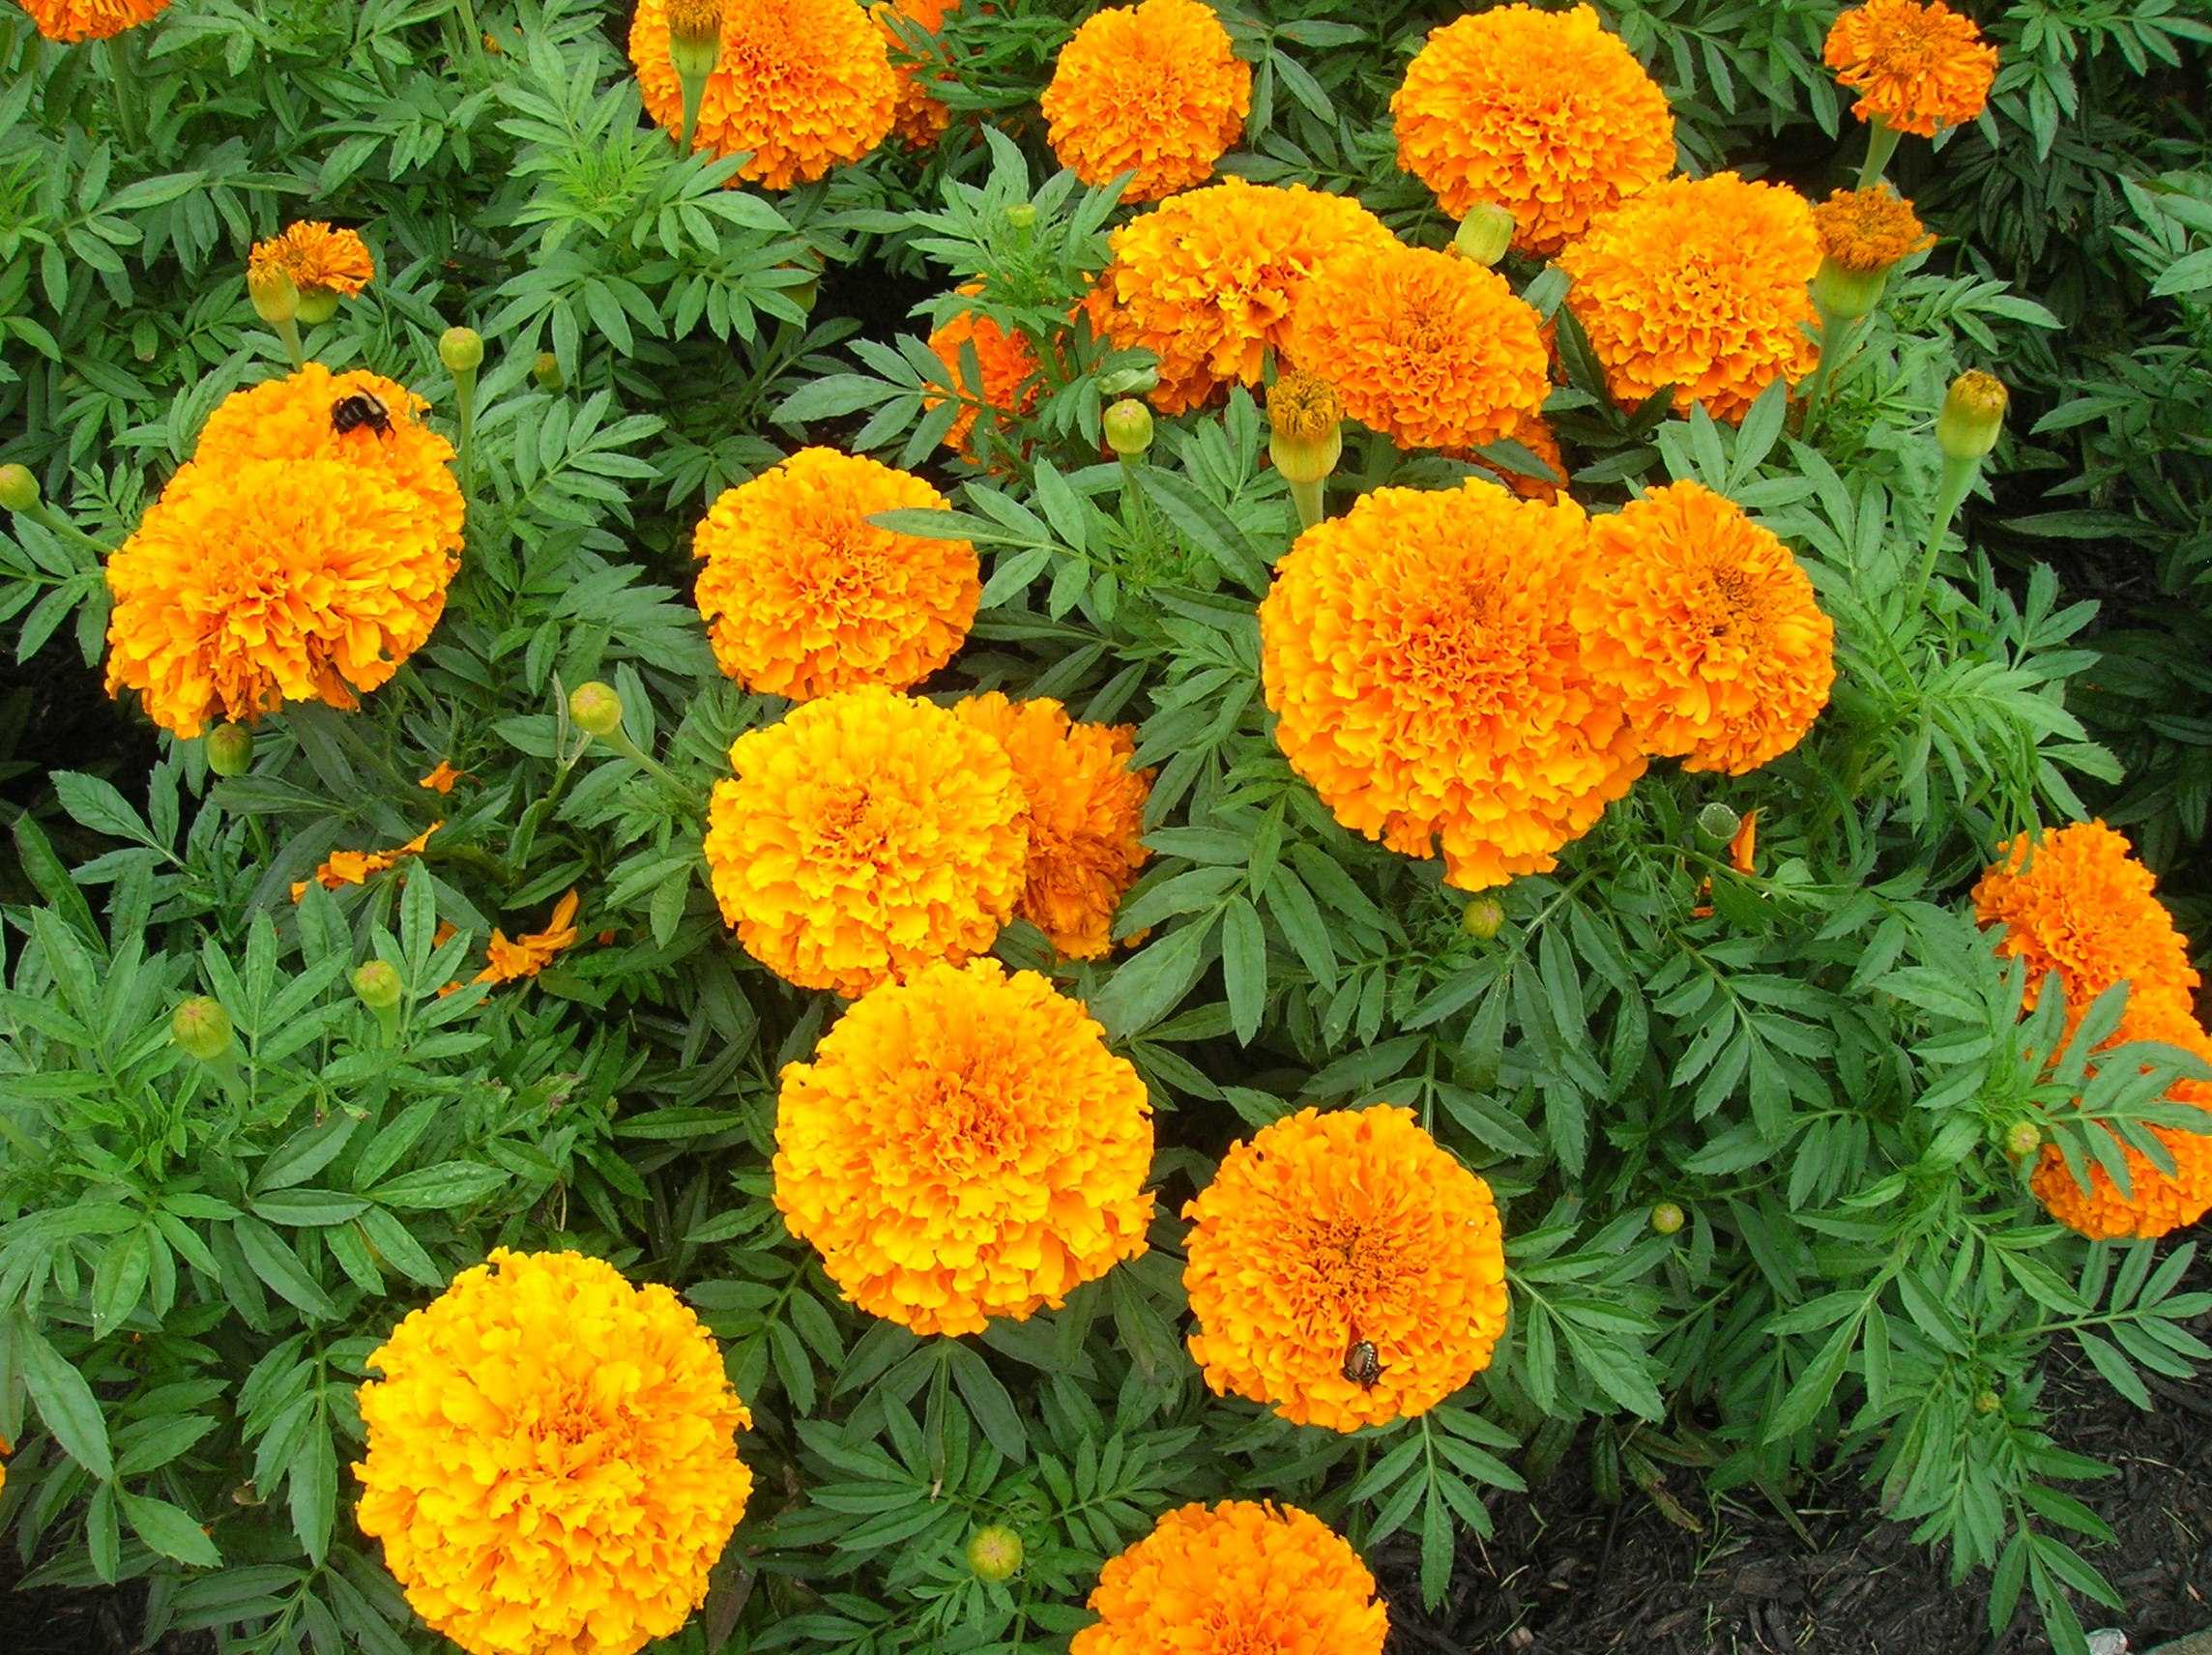 Vegetable Garden In Fall Wallpaper How To Grow Marigold Growing And Caring For Marigolds